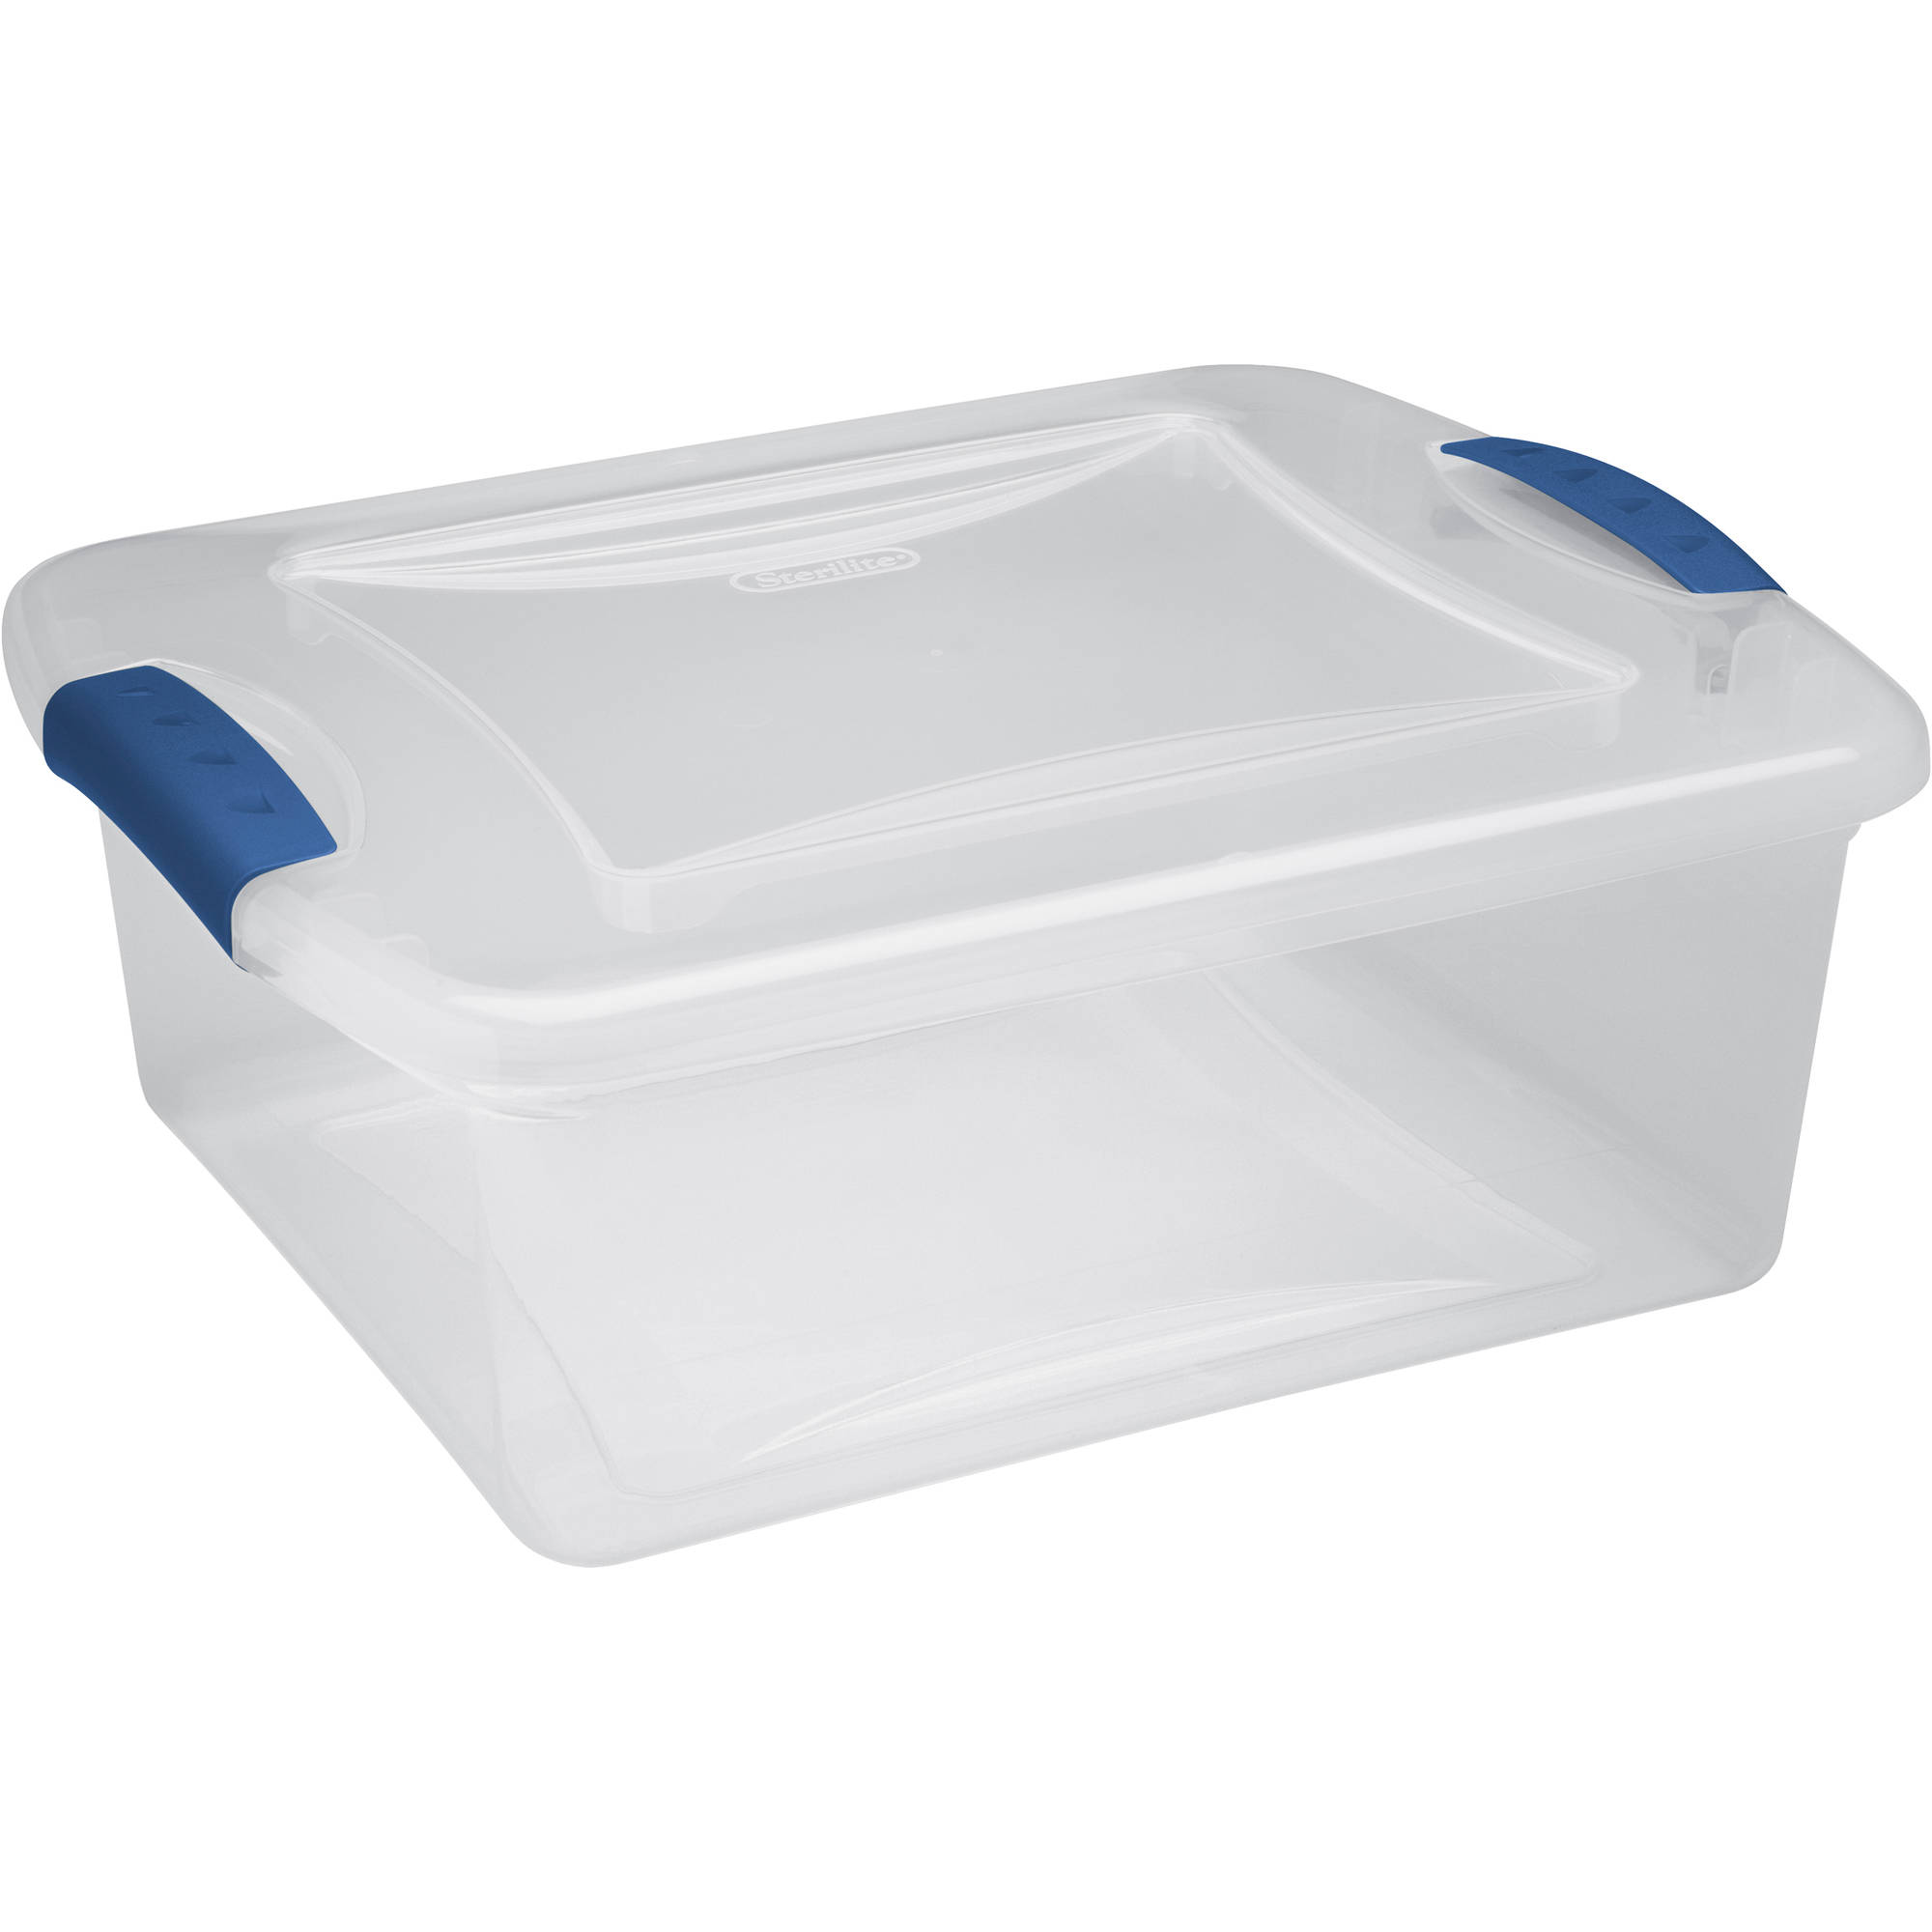 Popular 10 Gallon Storage Bins With Lids - 21f193fd-7f0f-468a-95cf-5bd96b53678d_1  Pictures_871637.jpeg